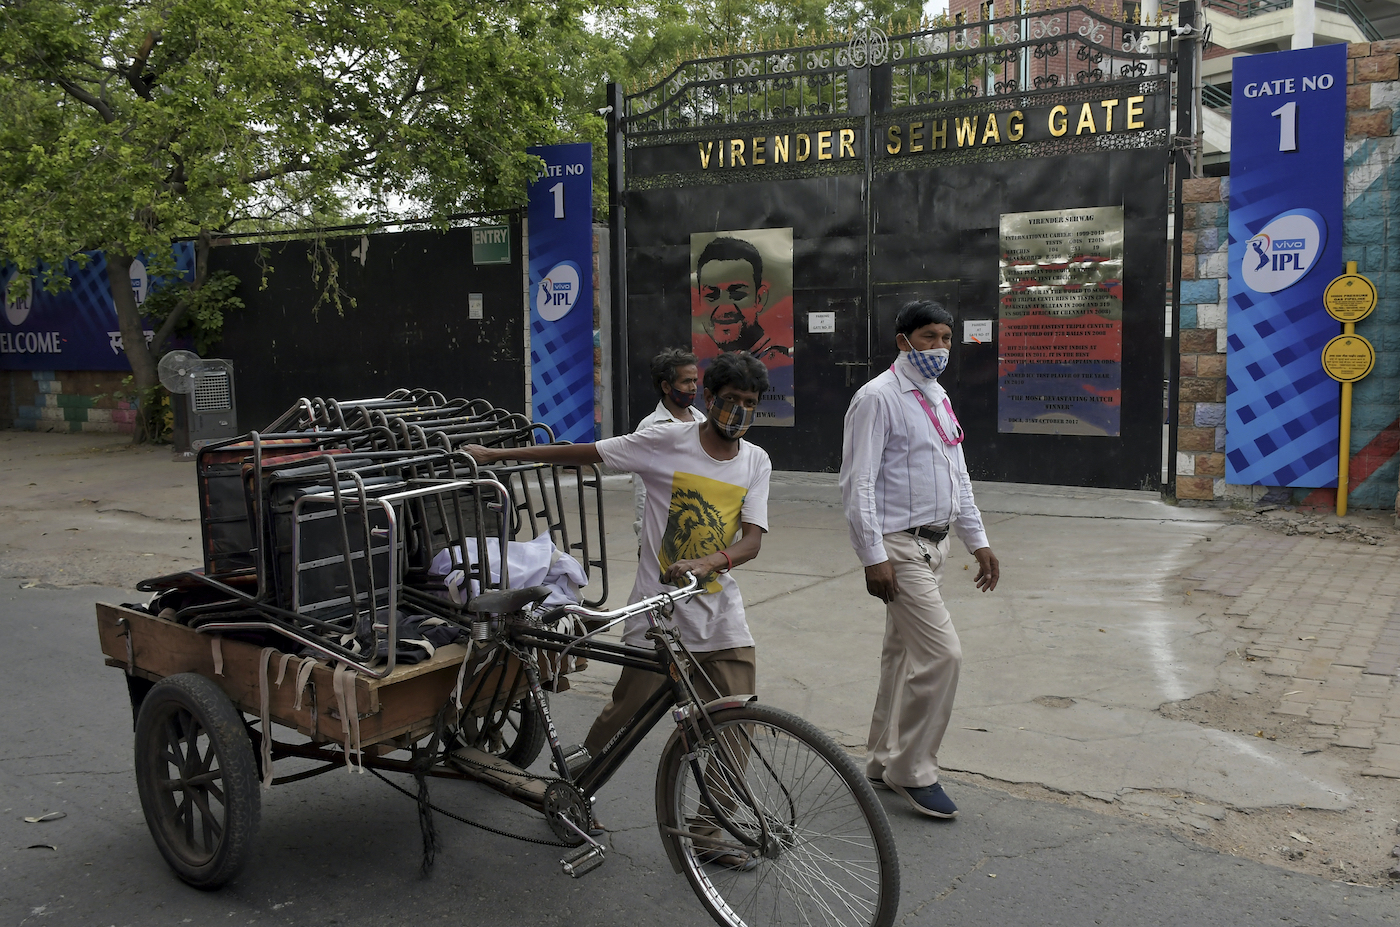 A worker carts chairs away in the wake of the cancellation of the 2021 IPL halfway through the tournament